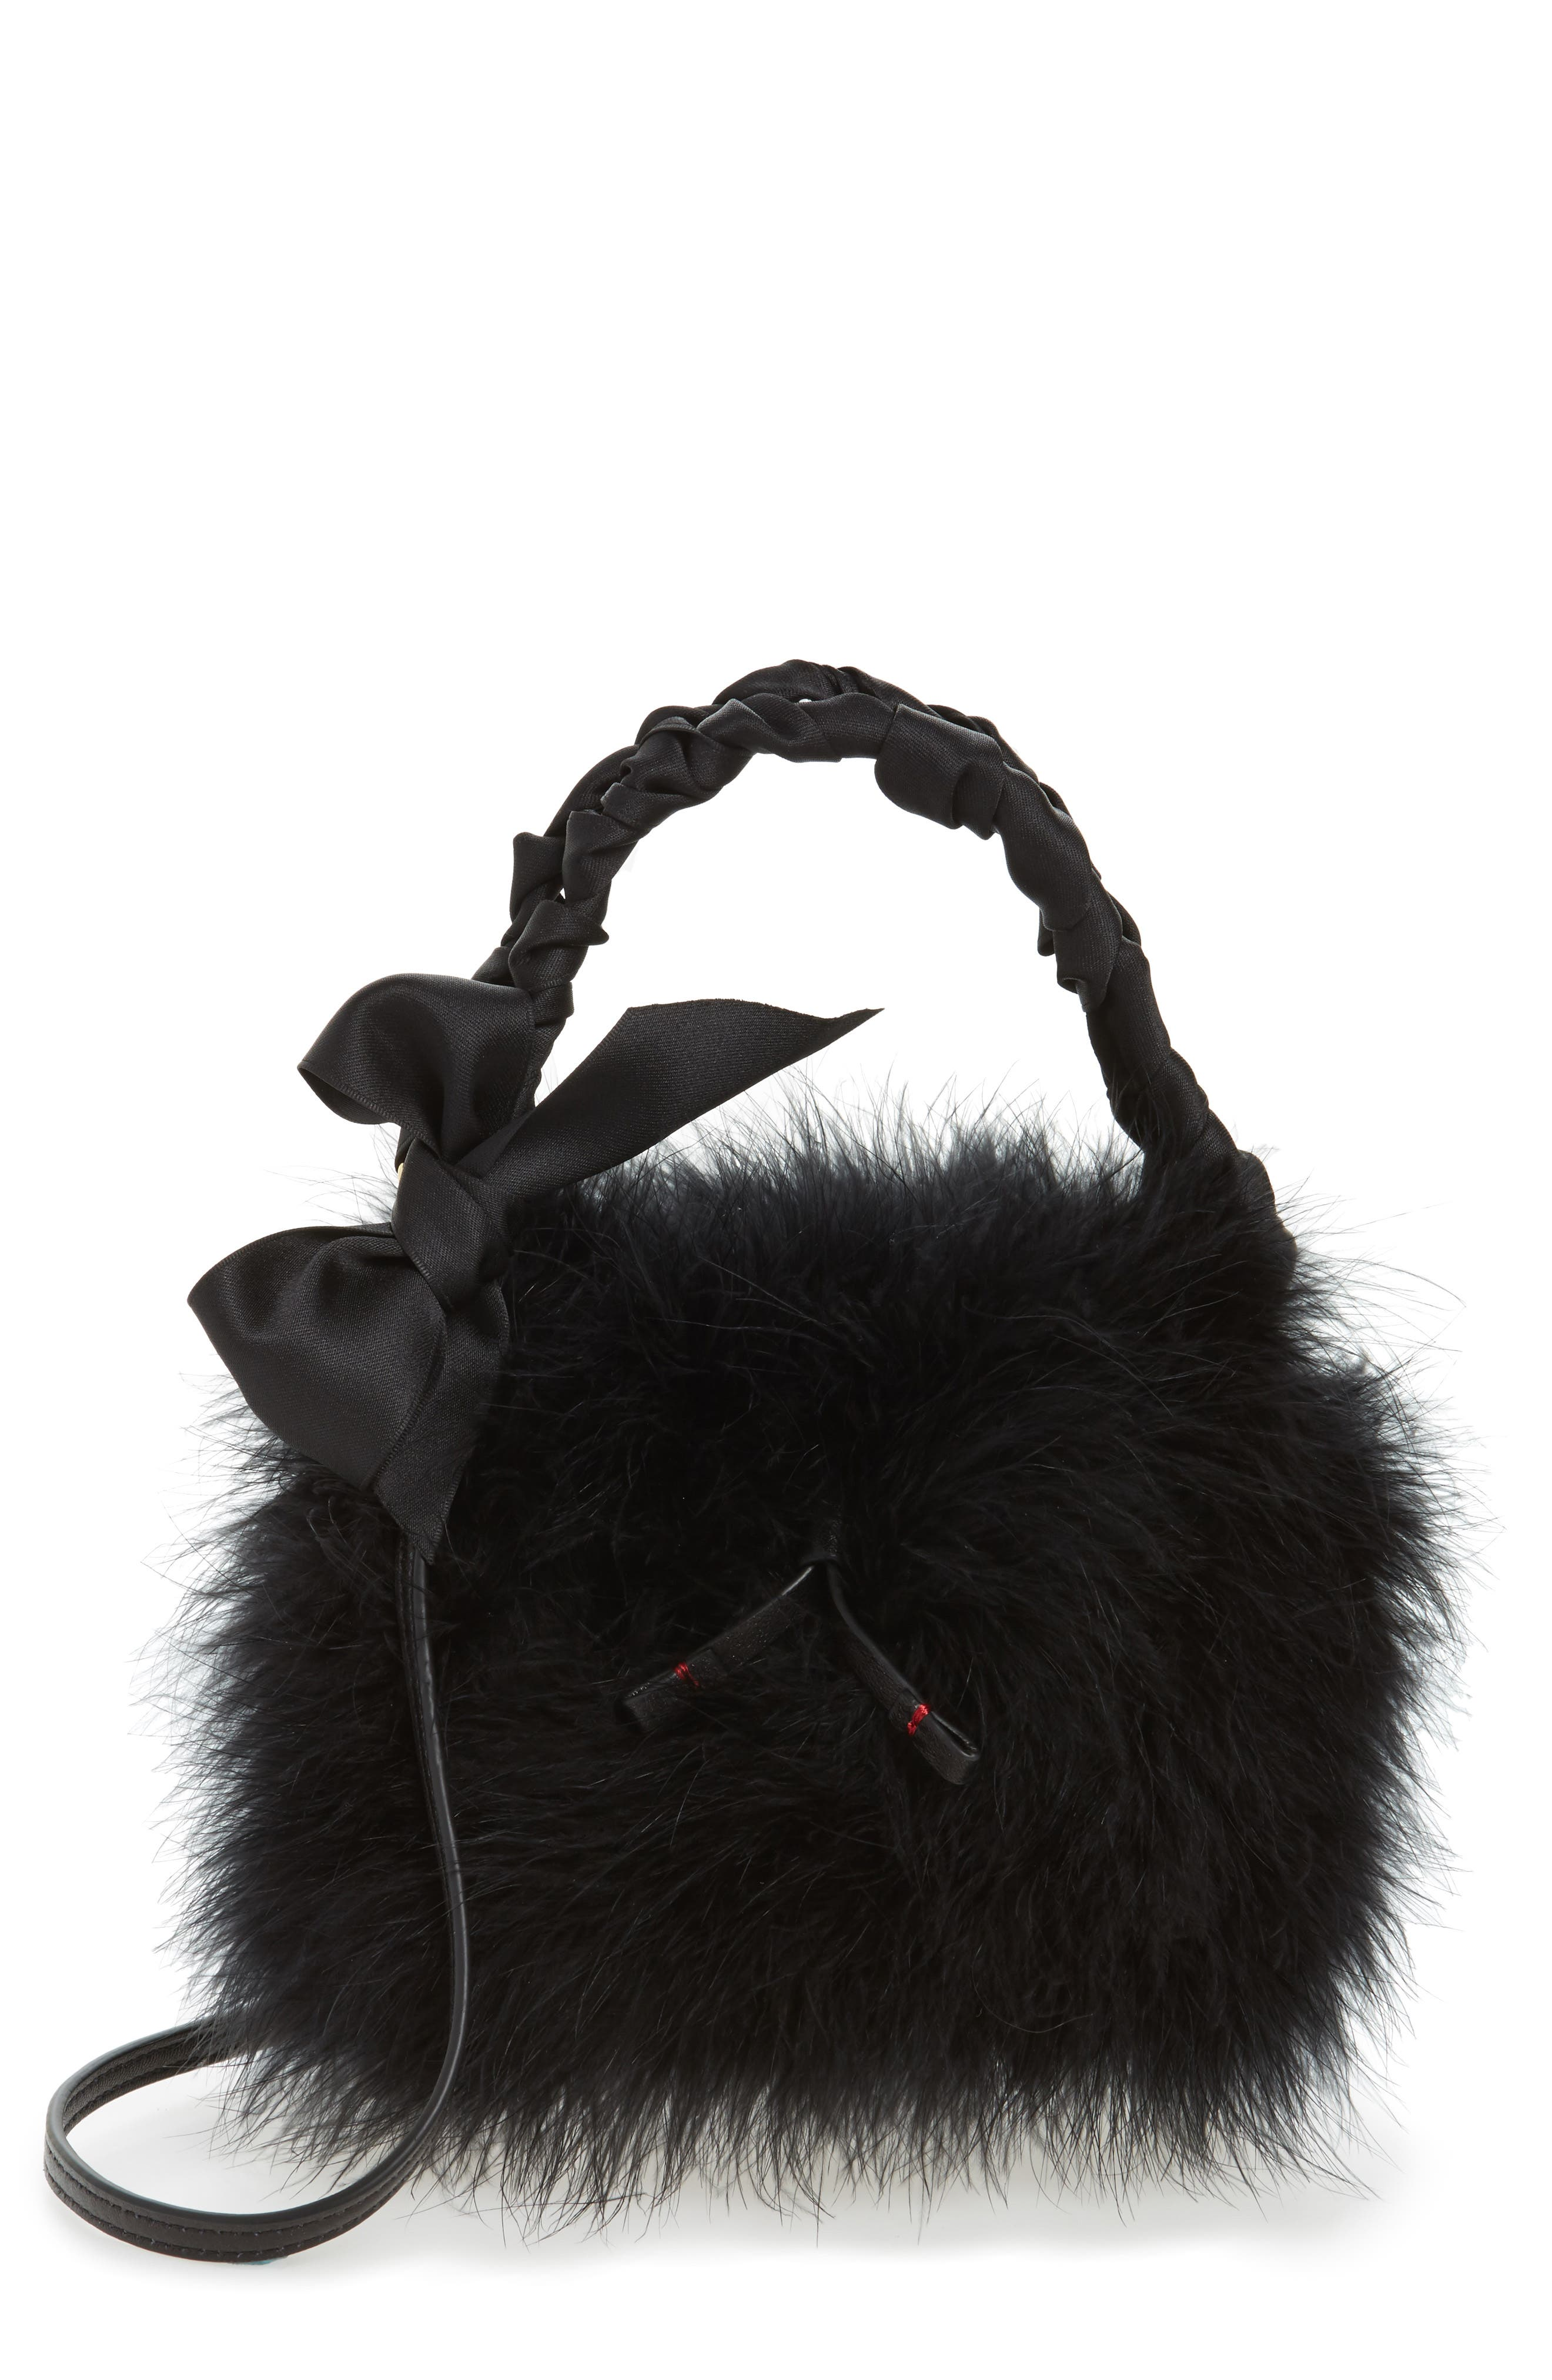 Small Calfskin Leather & Feather Bucket Bag,                         Main,                         color, 001